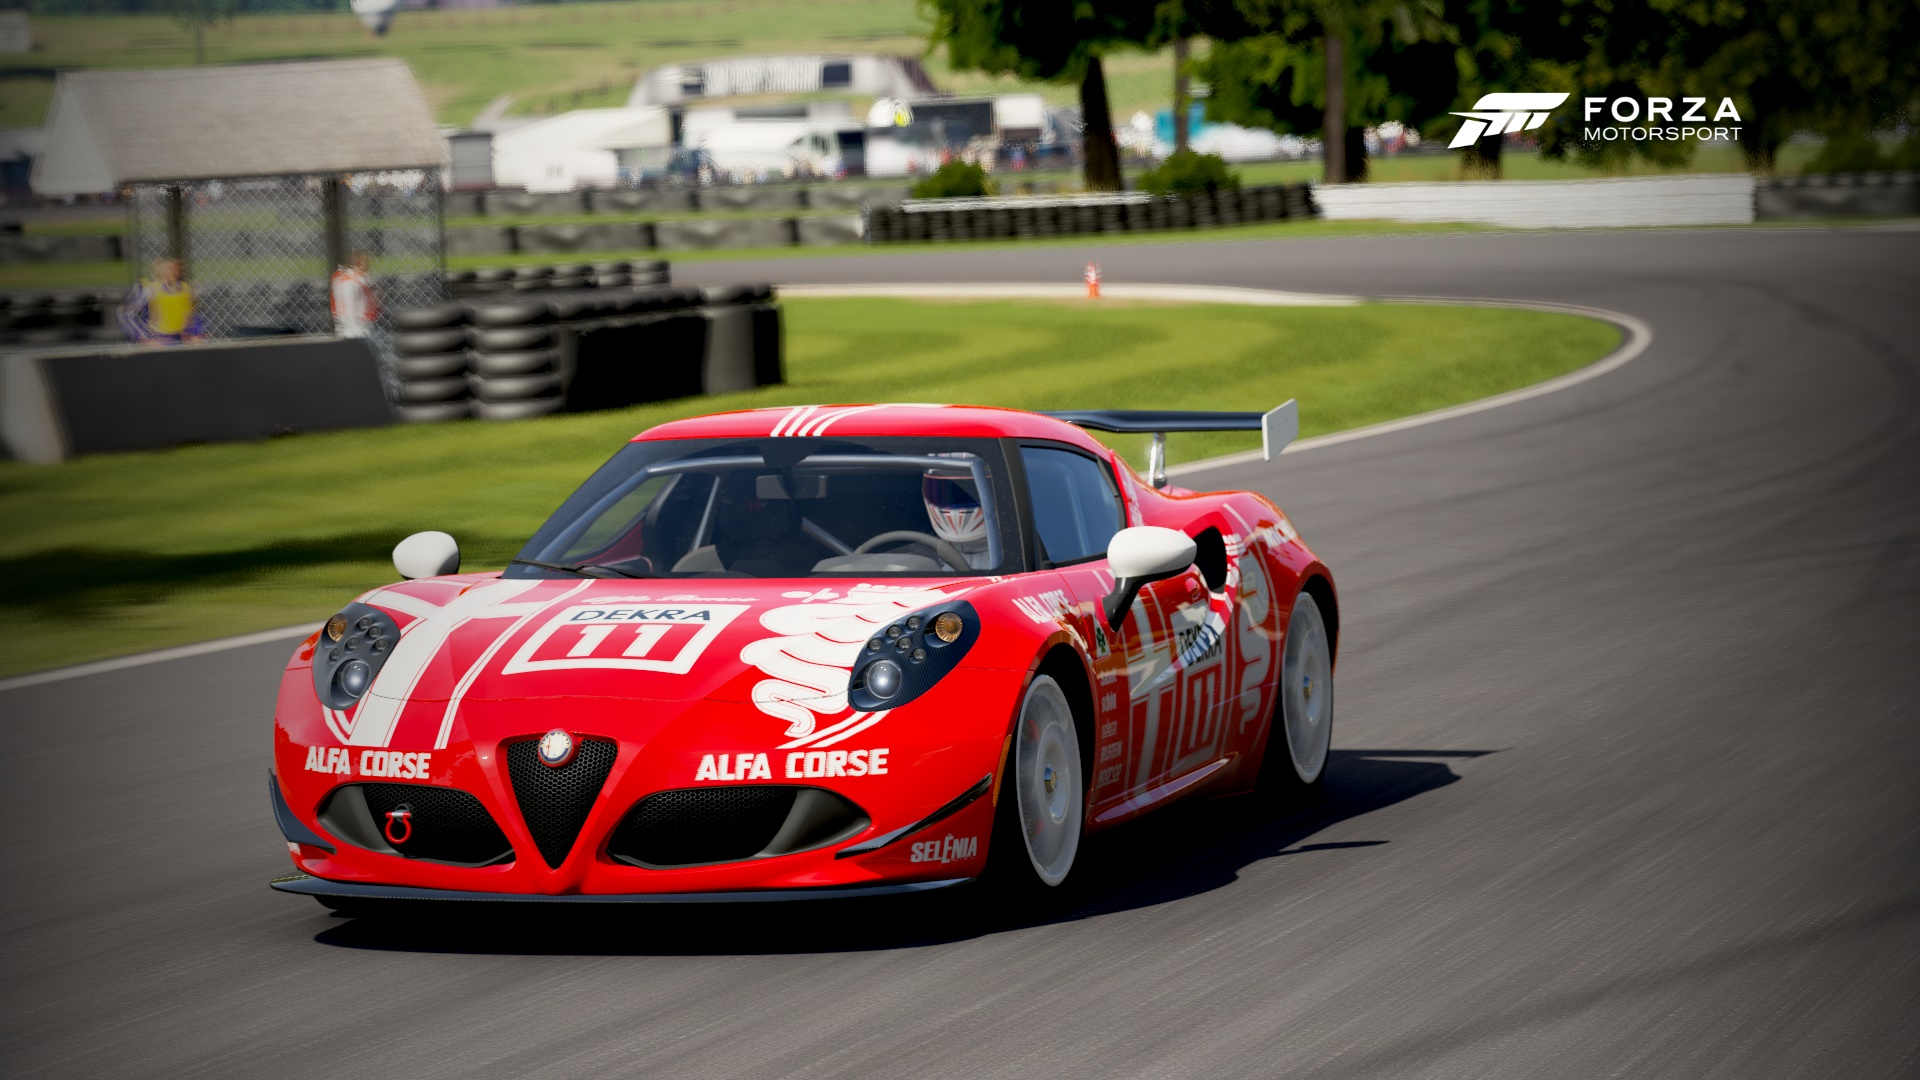 Race Dewtune Fm6 Liveries Added Ferrari 312p To Op Page 5 Paint Booth Forza Motorsport Forums